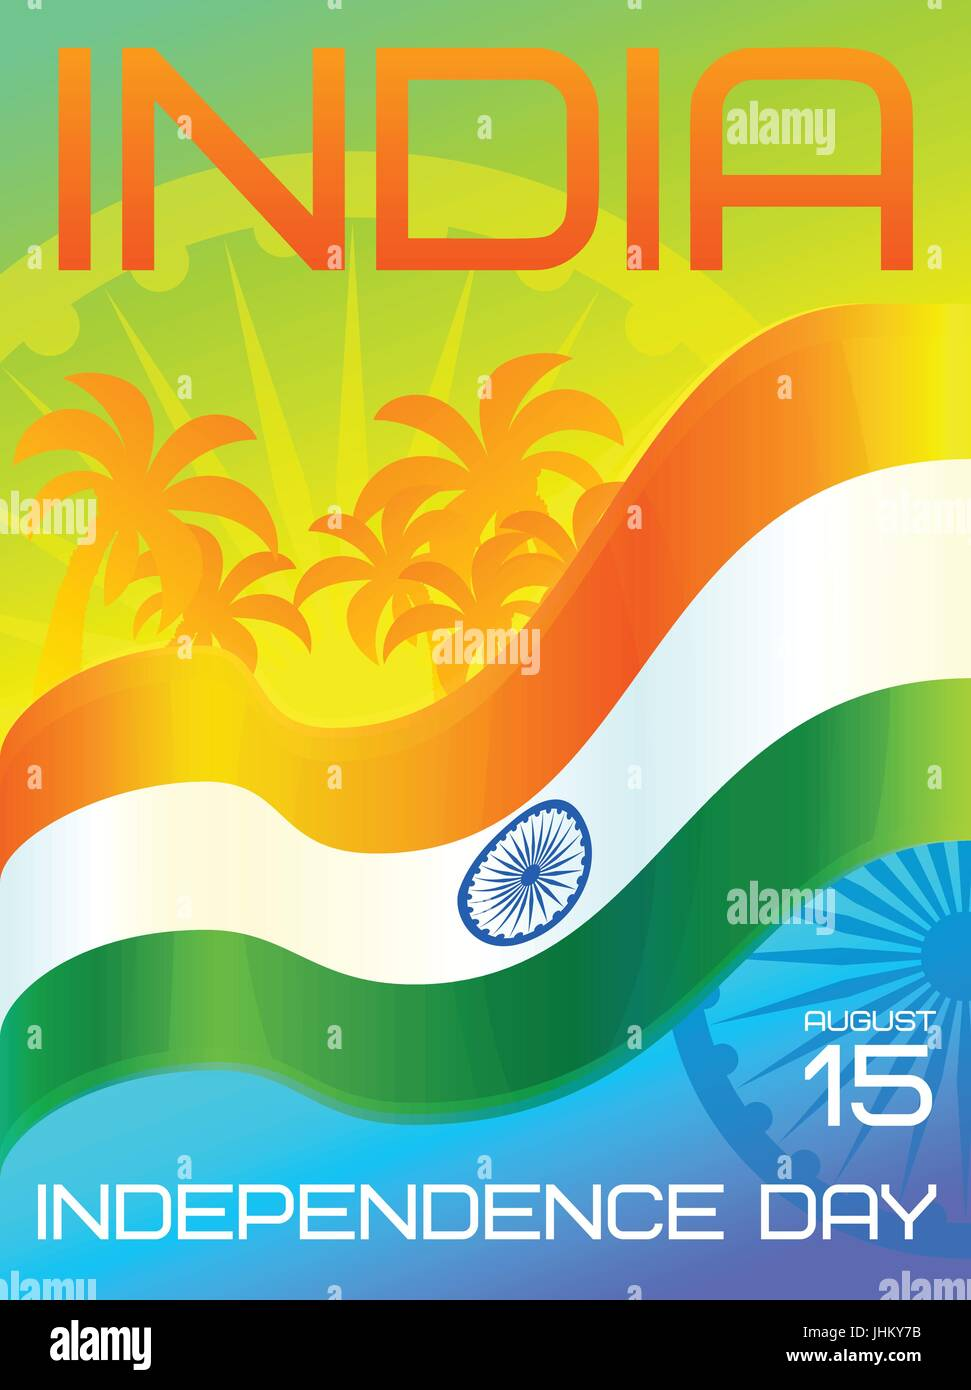 India Independence Day National Holiday 15 August Greeting Card